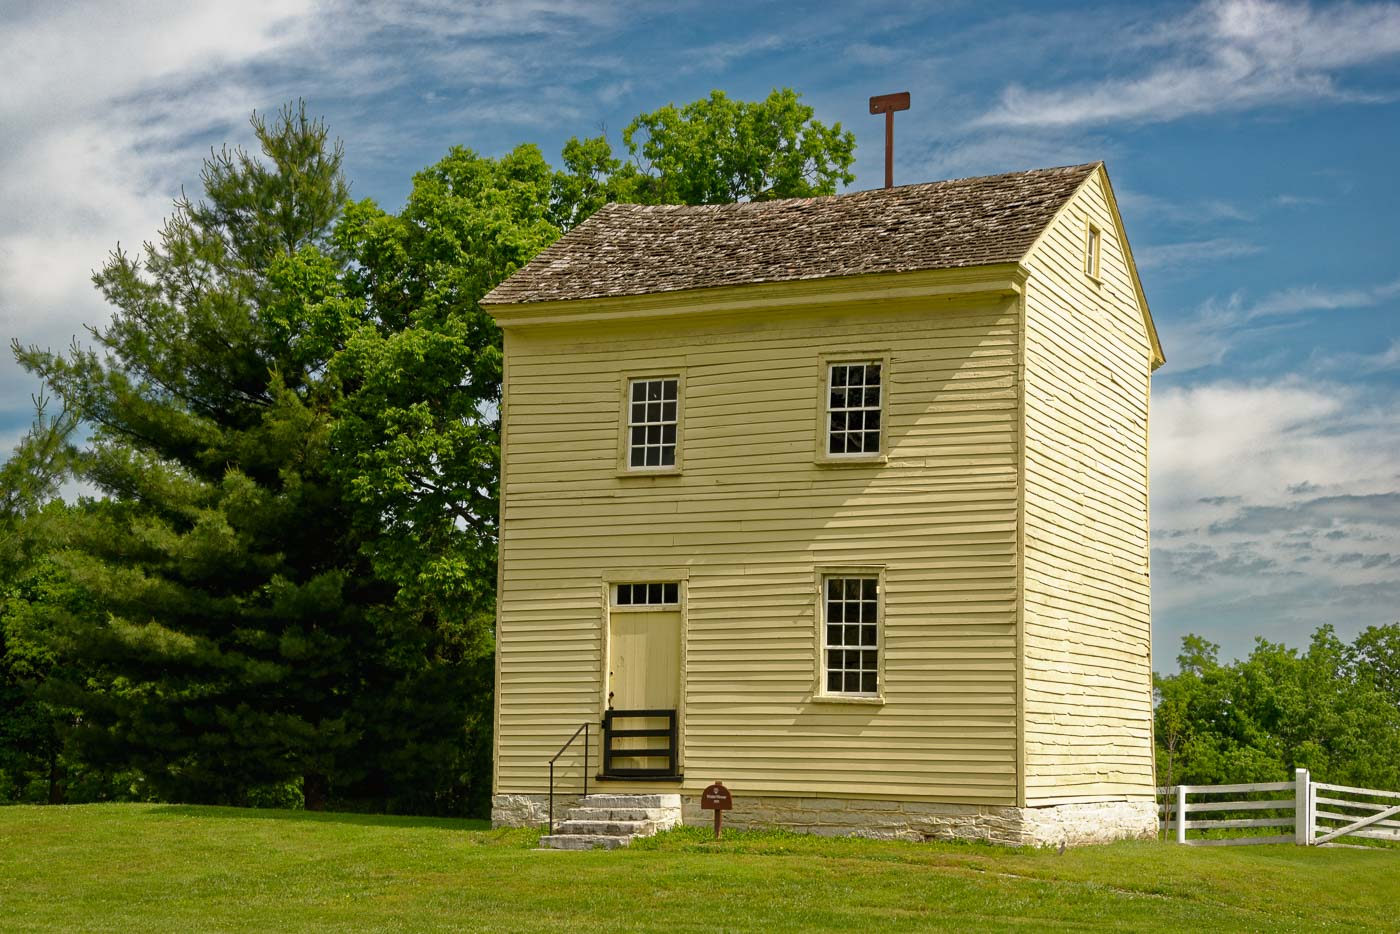 discovering the shaker village of pleasant hill | hardiman images